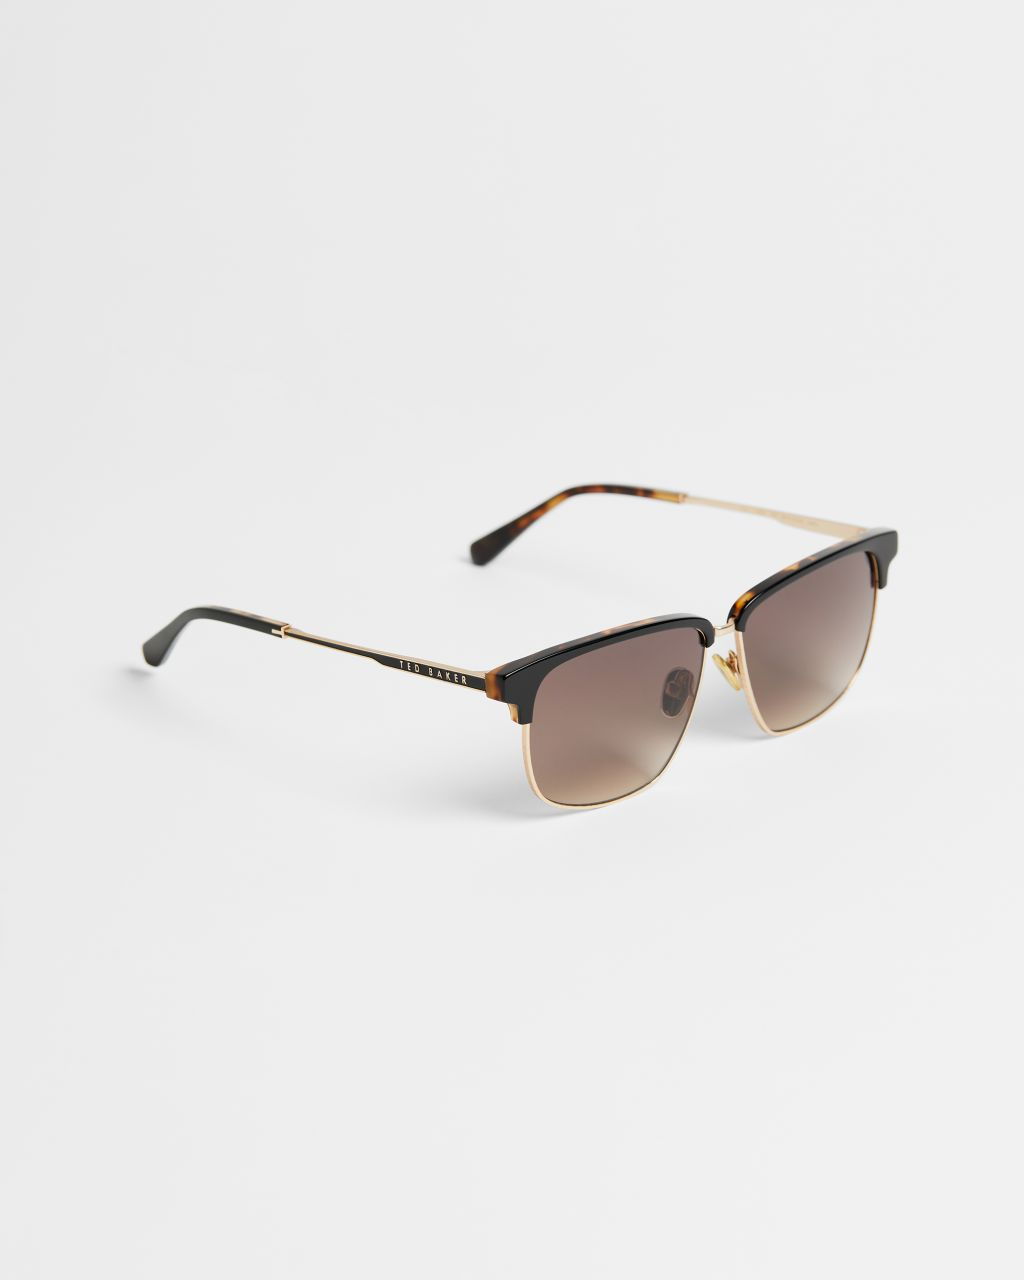 TED BAKER Combination Rectangle Sunglasses | TED BAKER SALE